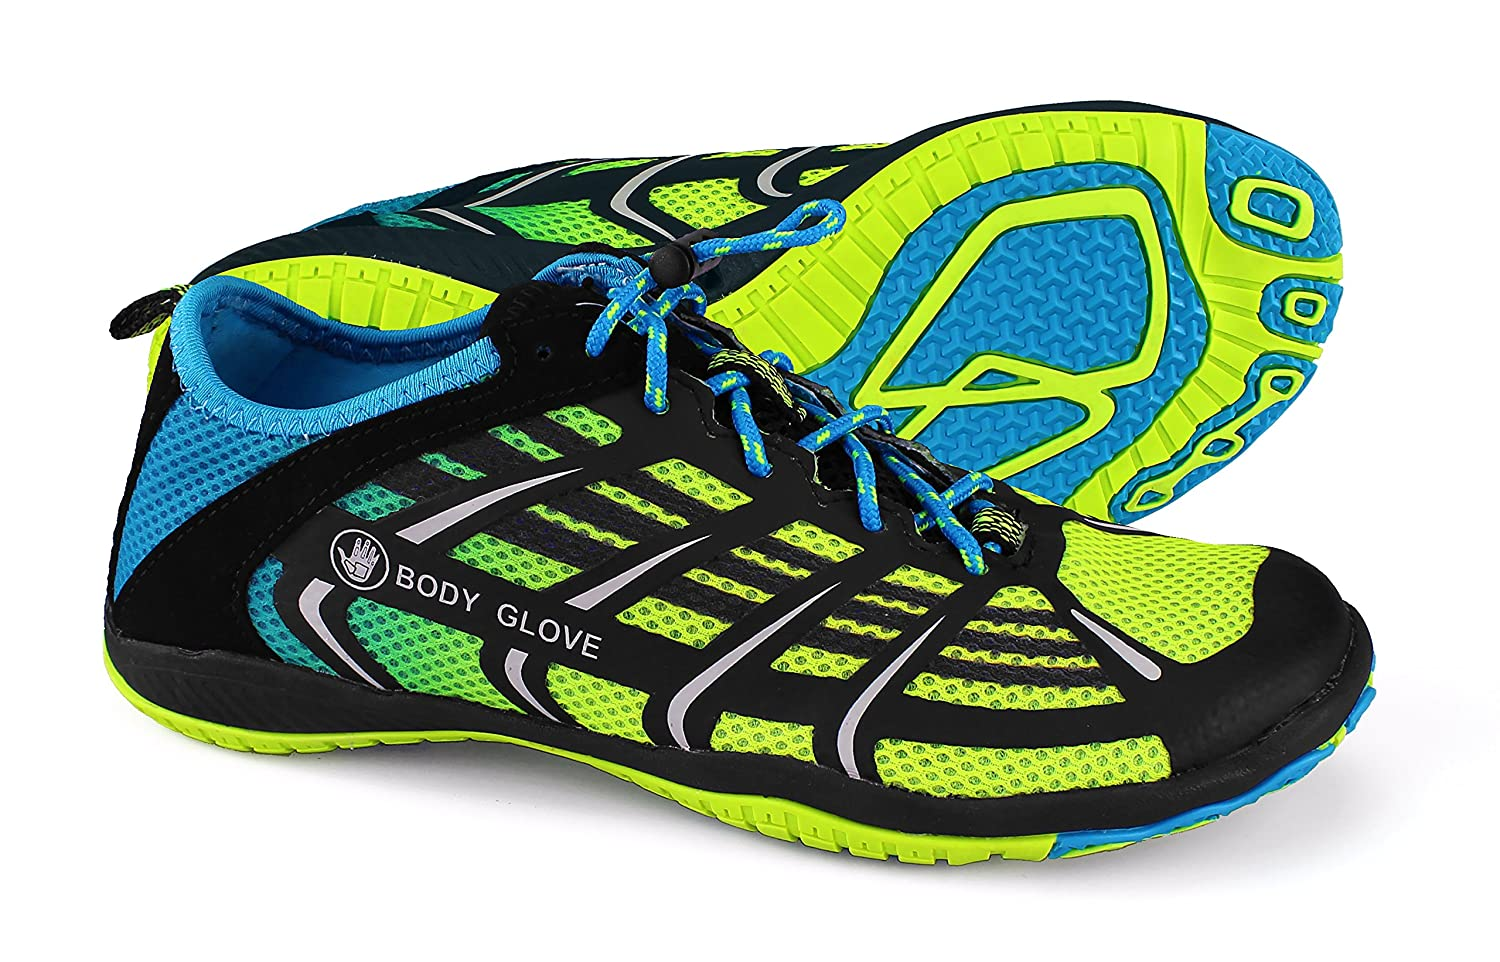 [ボディグローブ] Women 's Dynamo Rapid Water Shoe 6 B(M) US Neon Yellow/Neon Blue B077GC89WJ